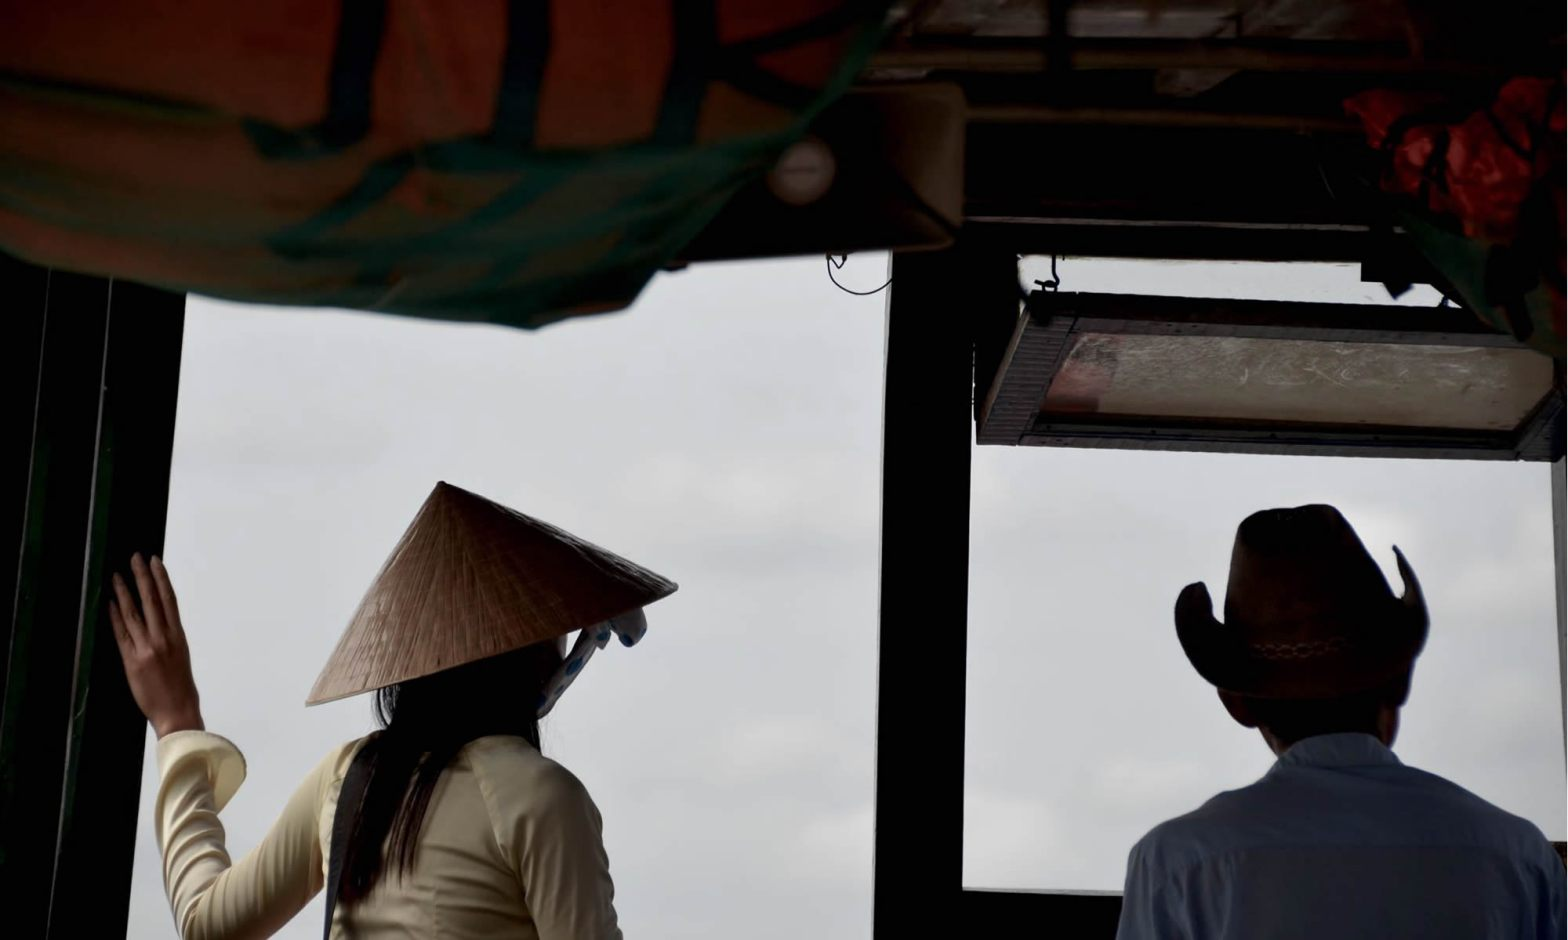 A woman wearing a traditional Vietnamese non la hat, stands next to a man in a cowboy hat.